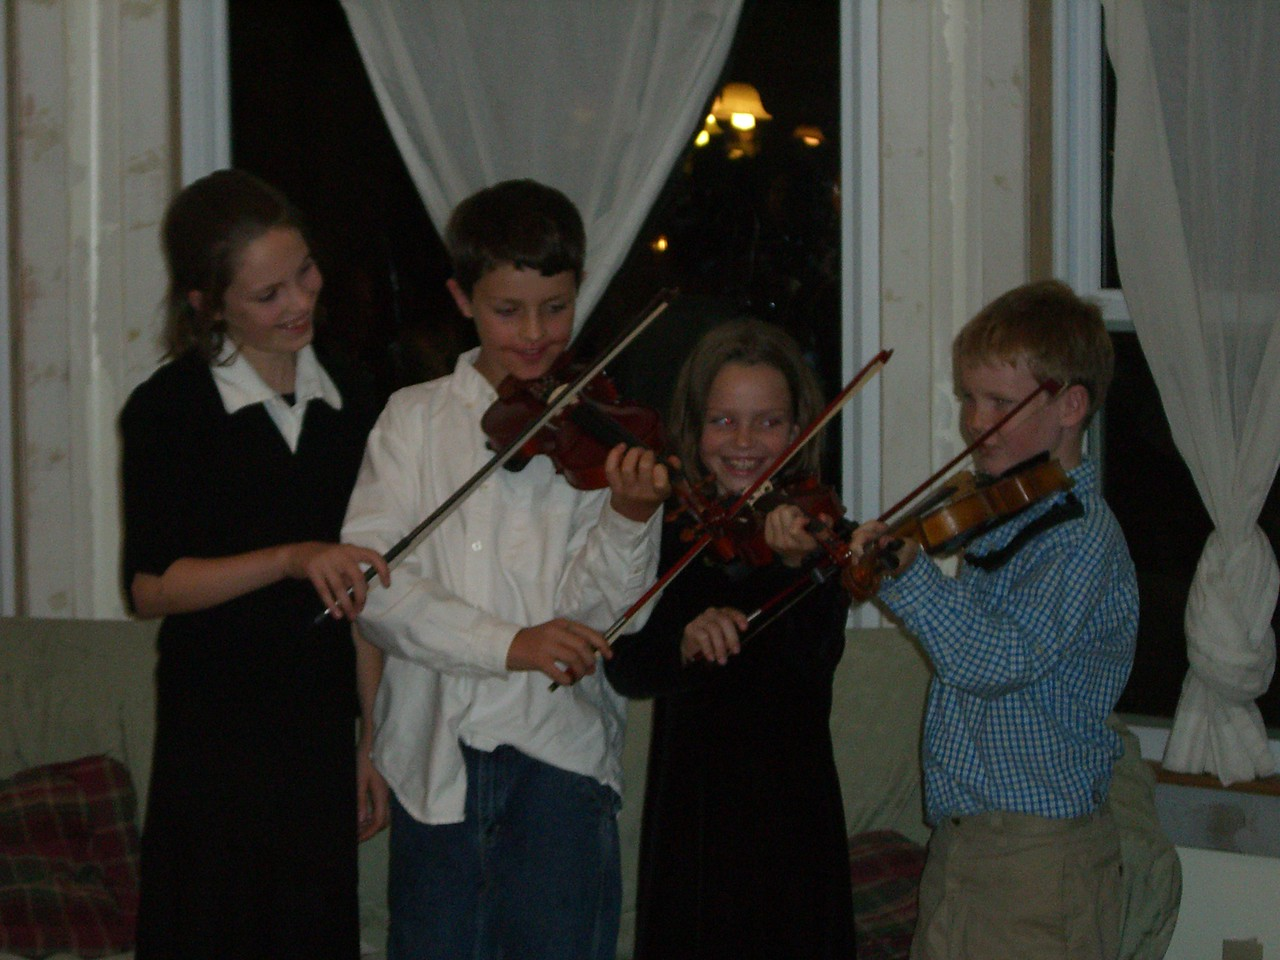 Sarah, Spencer, & Sterling Tuma and James Clifford sharing violins